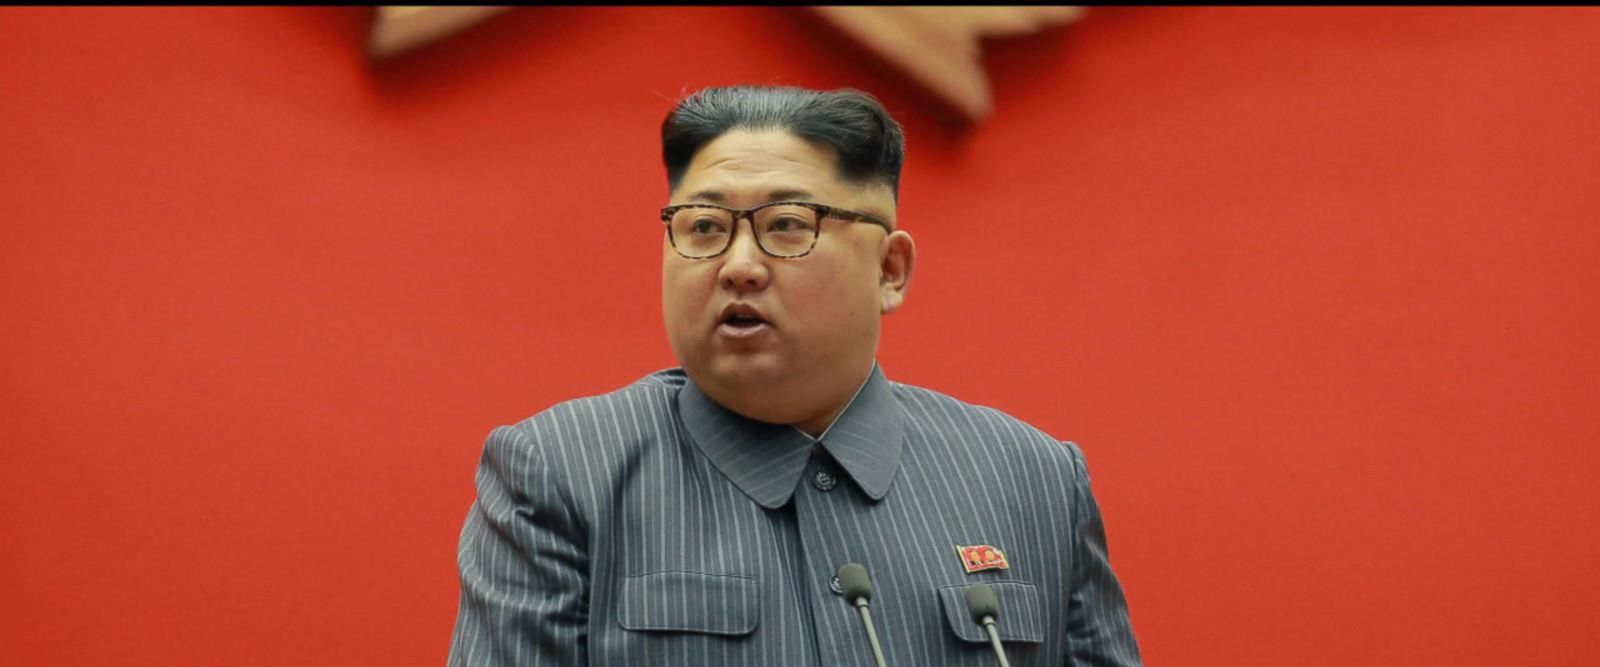 VIDEO: Kim Jong Un under international spotlight after halting nuclear tests